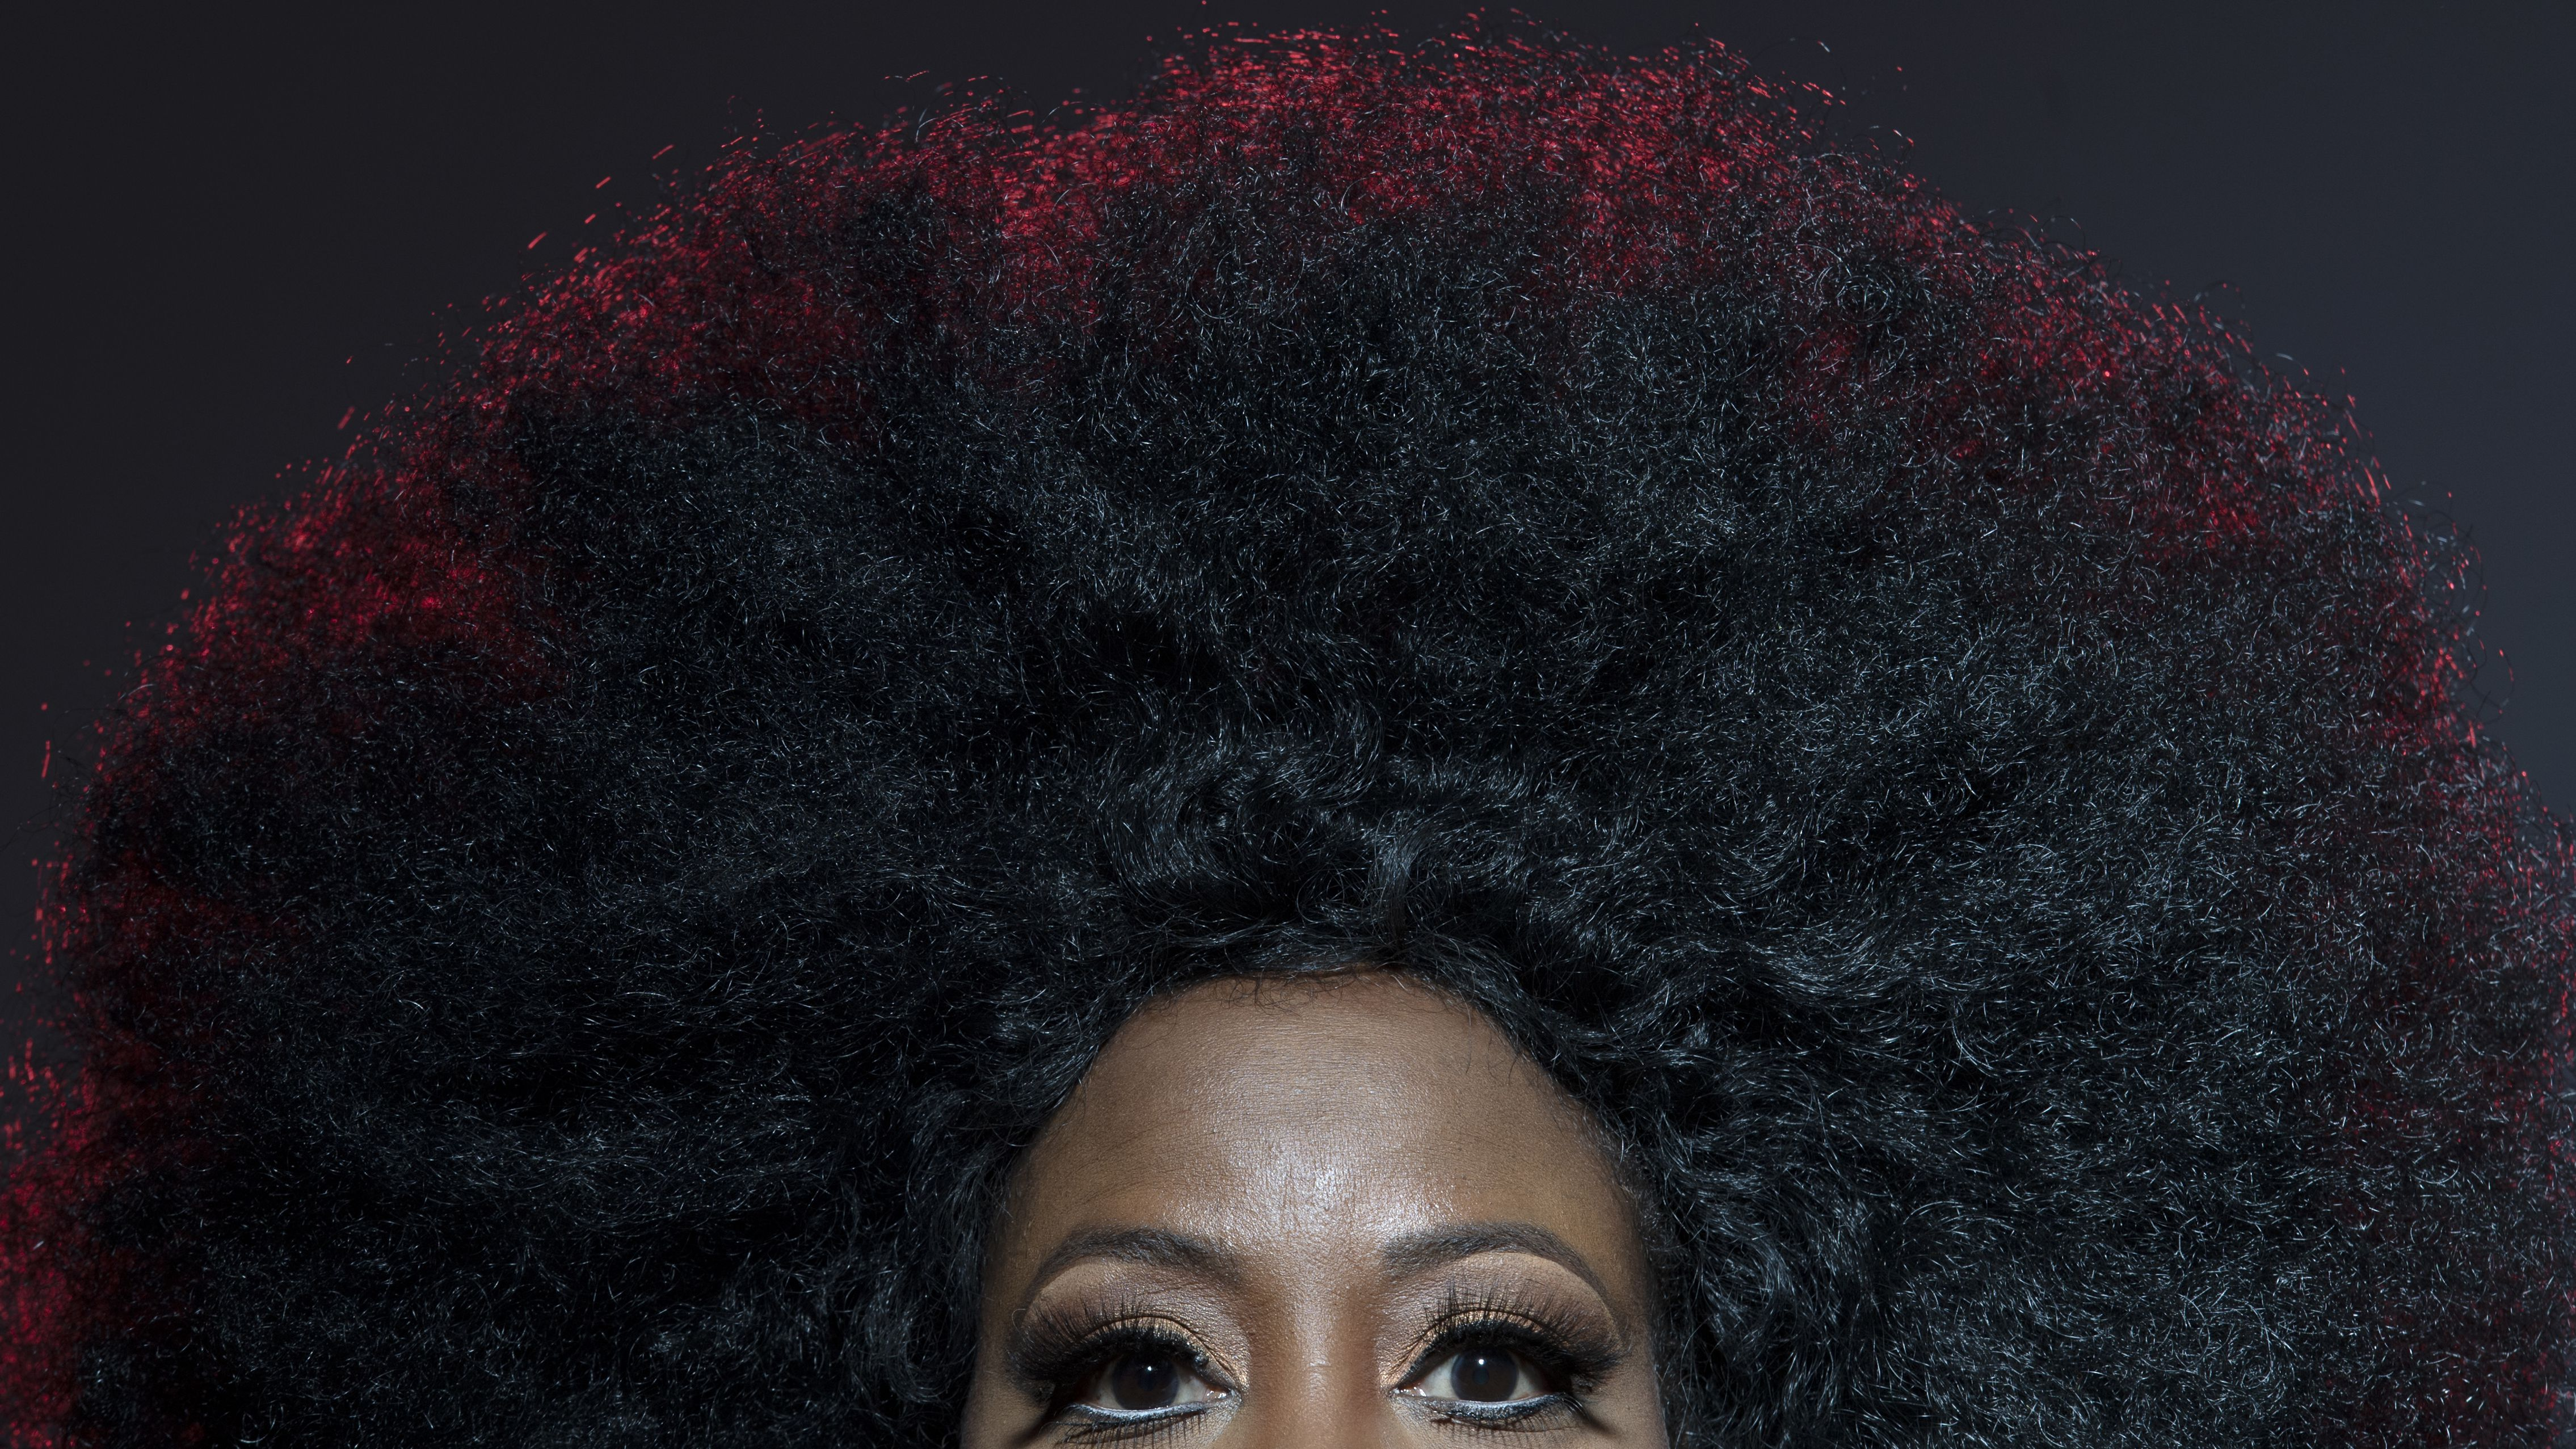 Natural Hair Styles In The Workplace Protections For Race Based